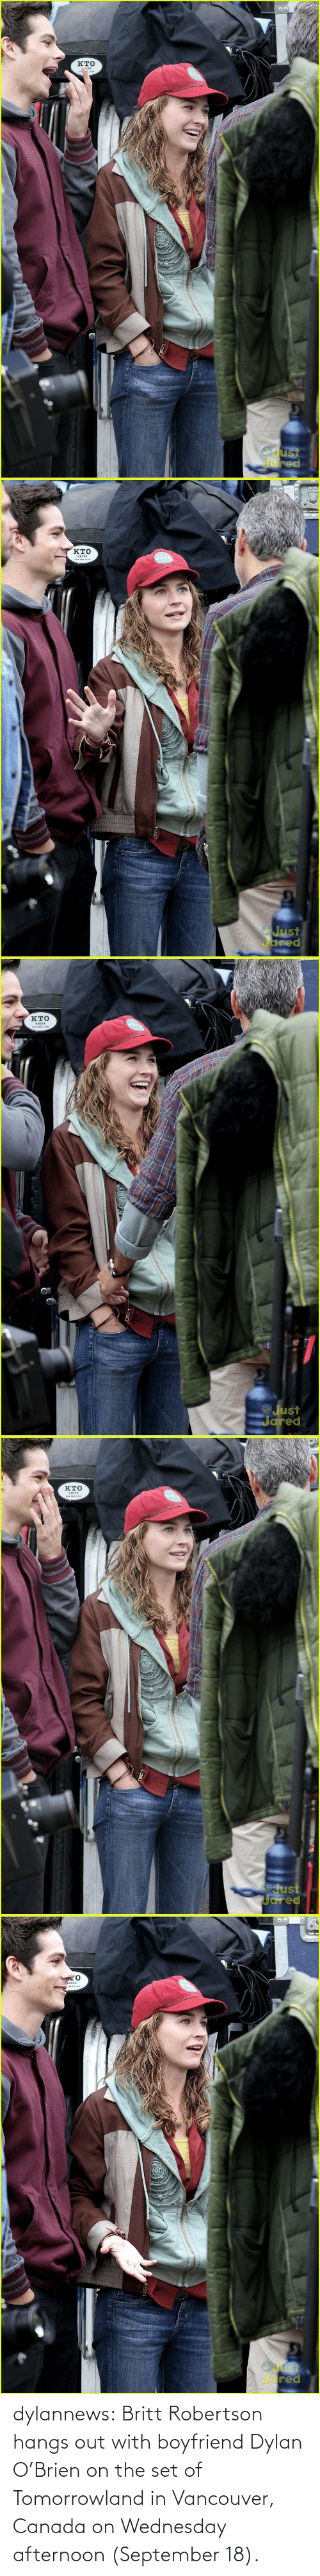 Grips: кто  IPS  JR UST  Jared   кто  GNIPS  Just  Jared  ) ২   кто  GRIPS  Just  Jared   кто  ORIPS  Just  Jared   GRIPS  oust  Jared dylannews:  Britt Robertson hangs out with boyfriend Dylan O'Brien on the set of Tomorrowland in Vancouver, Canada on Wednesday afternoon (September 18).